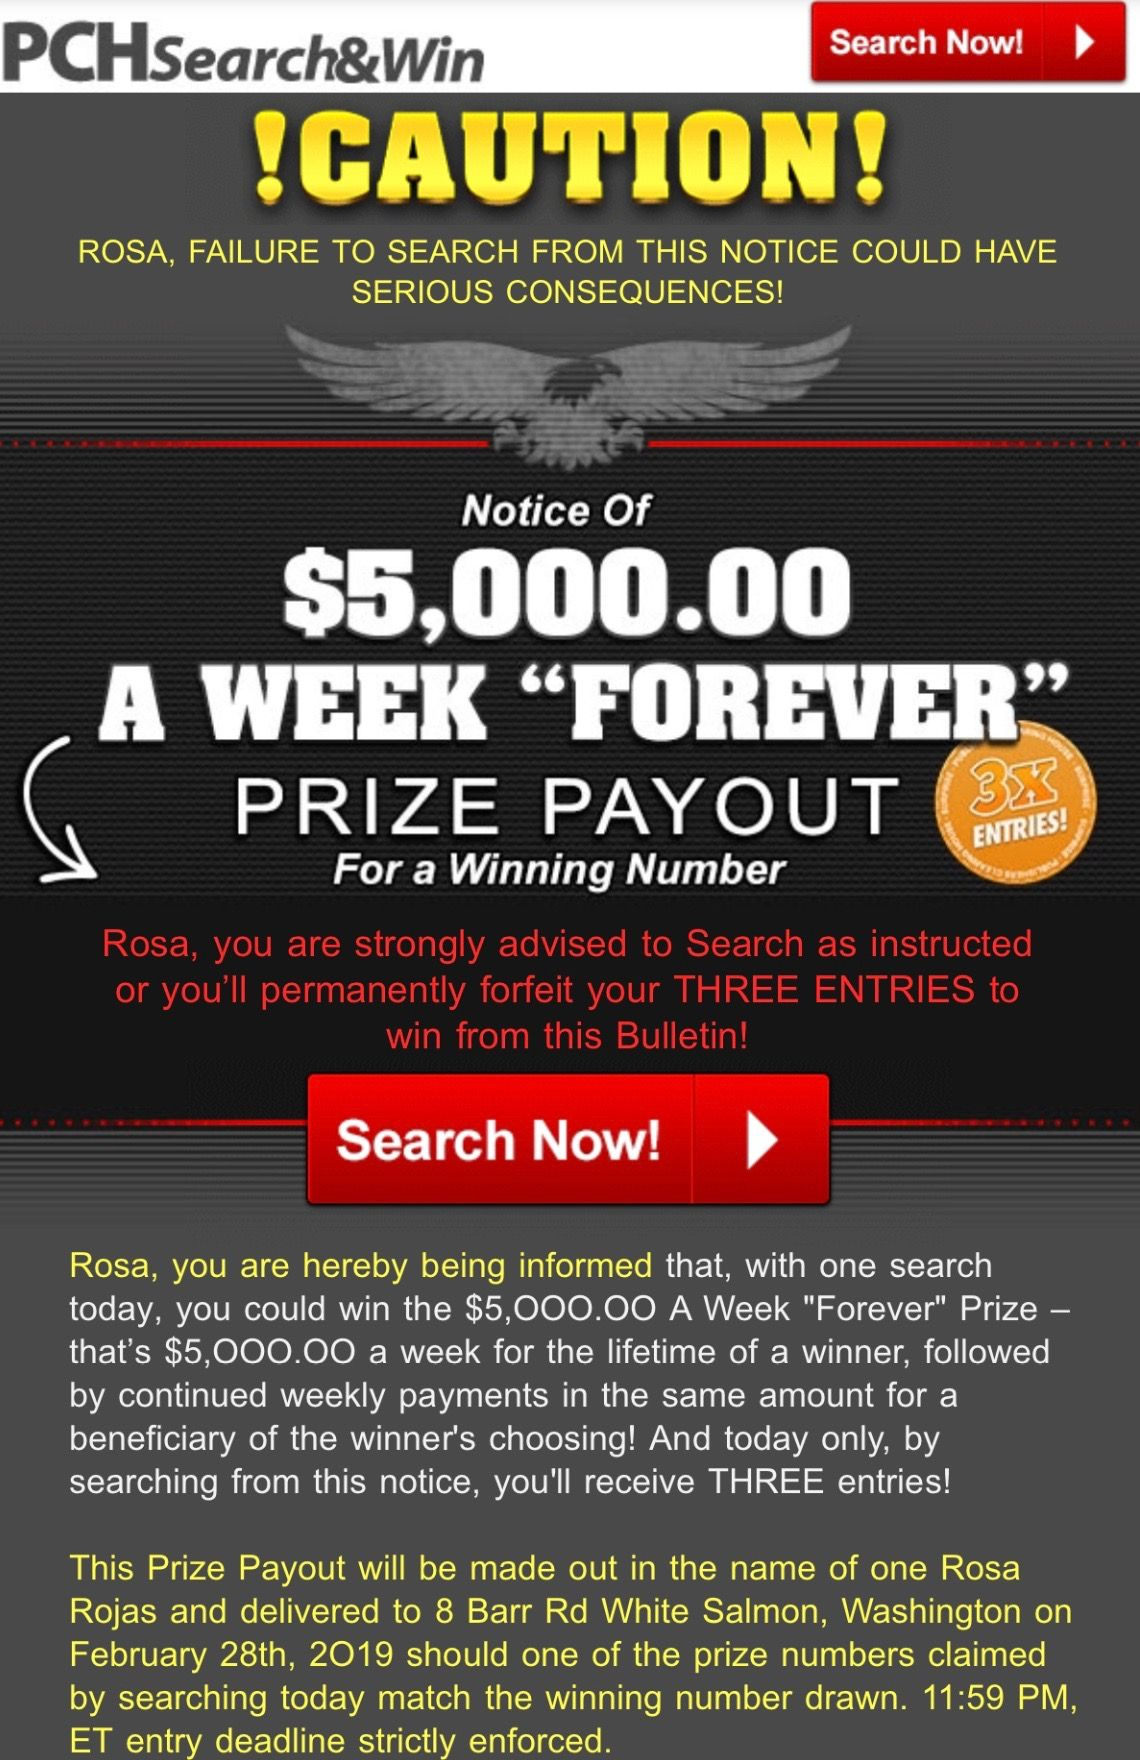 How Do I Get My Pch Prize Number